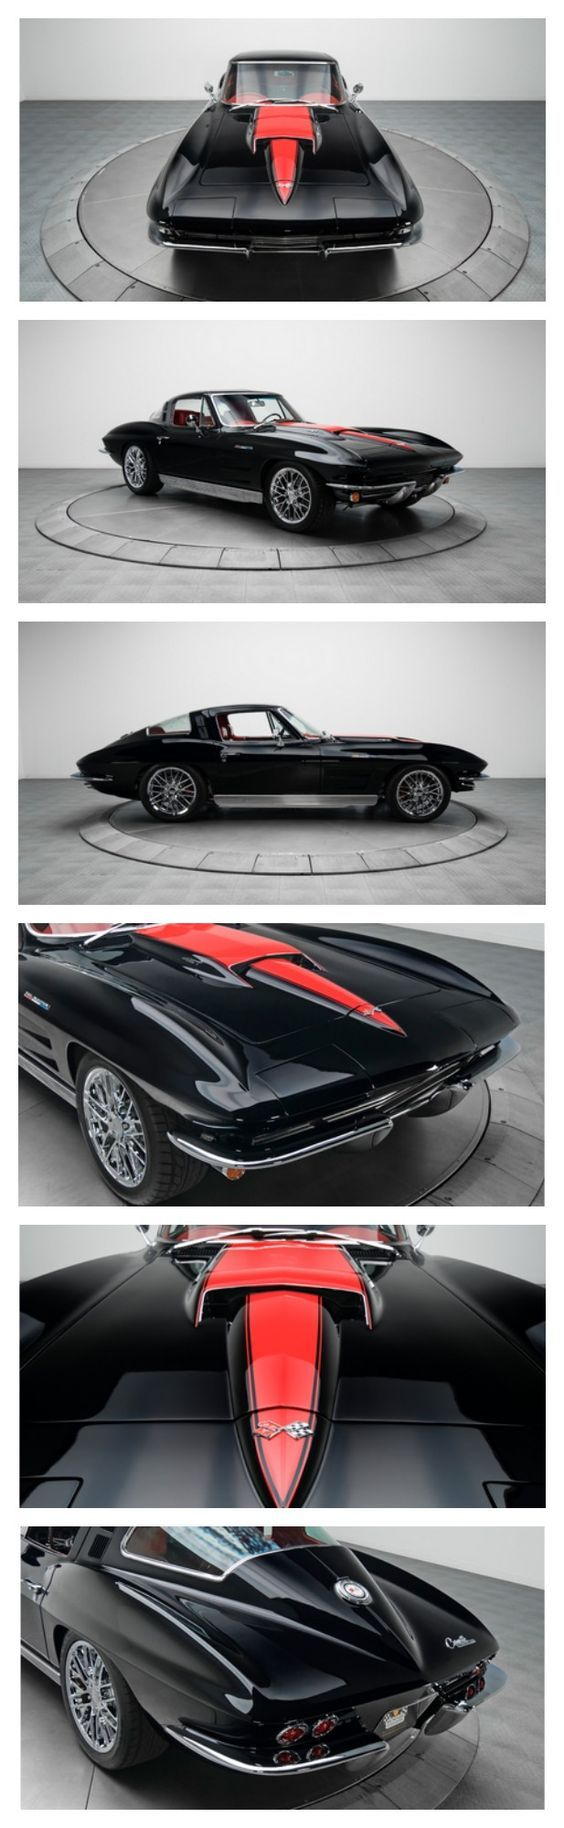 1964 Chevy Corvette Stingray - If you're looking for a razor-sharp sports car that offers vintage style and top notch performance, your search is officially over! #ThrowbackThursday: